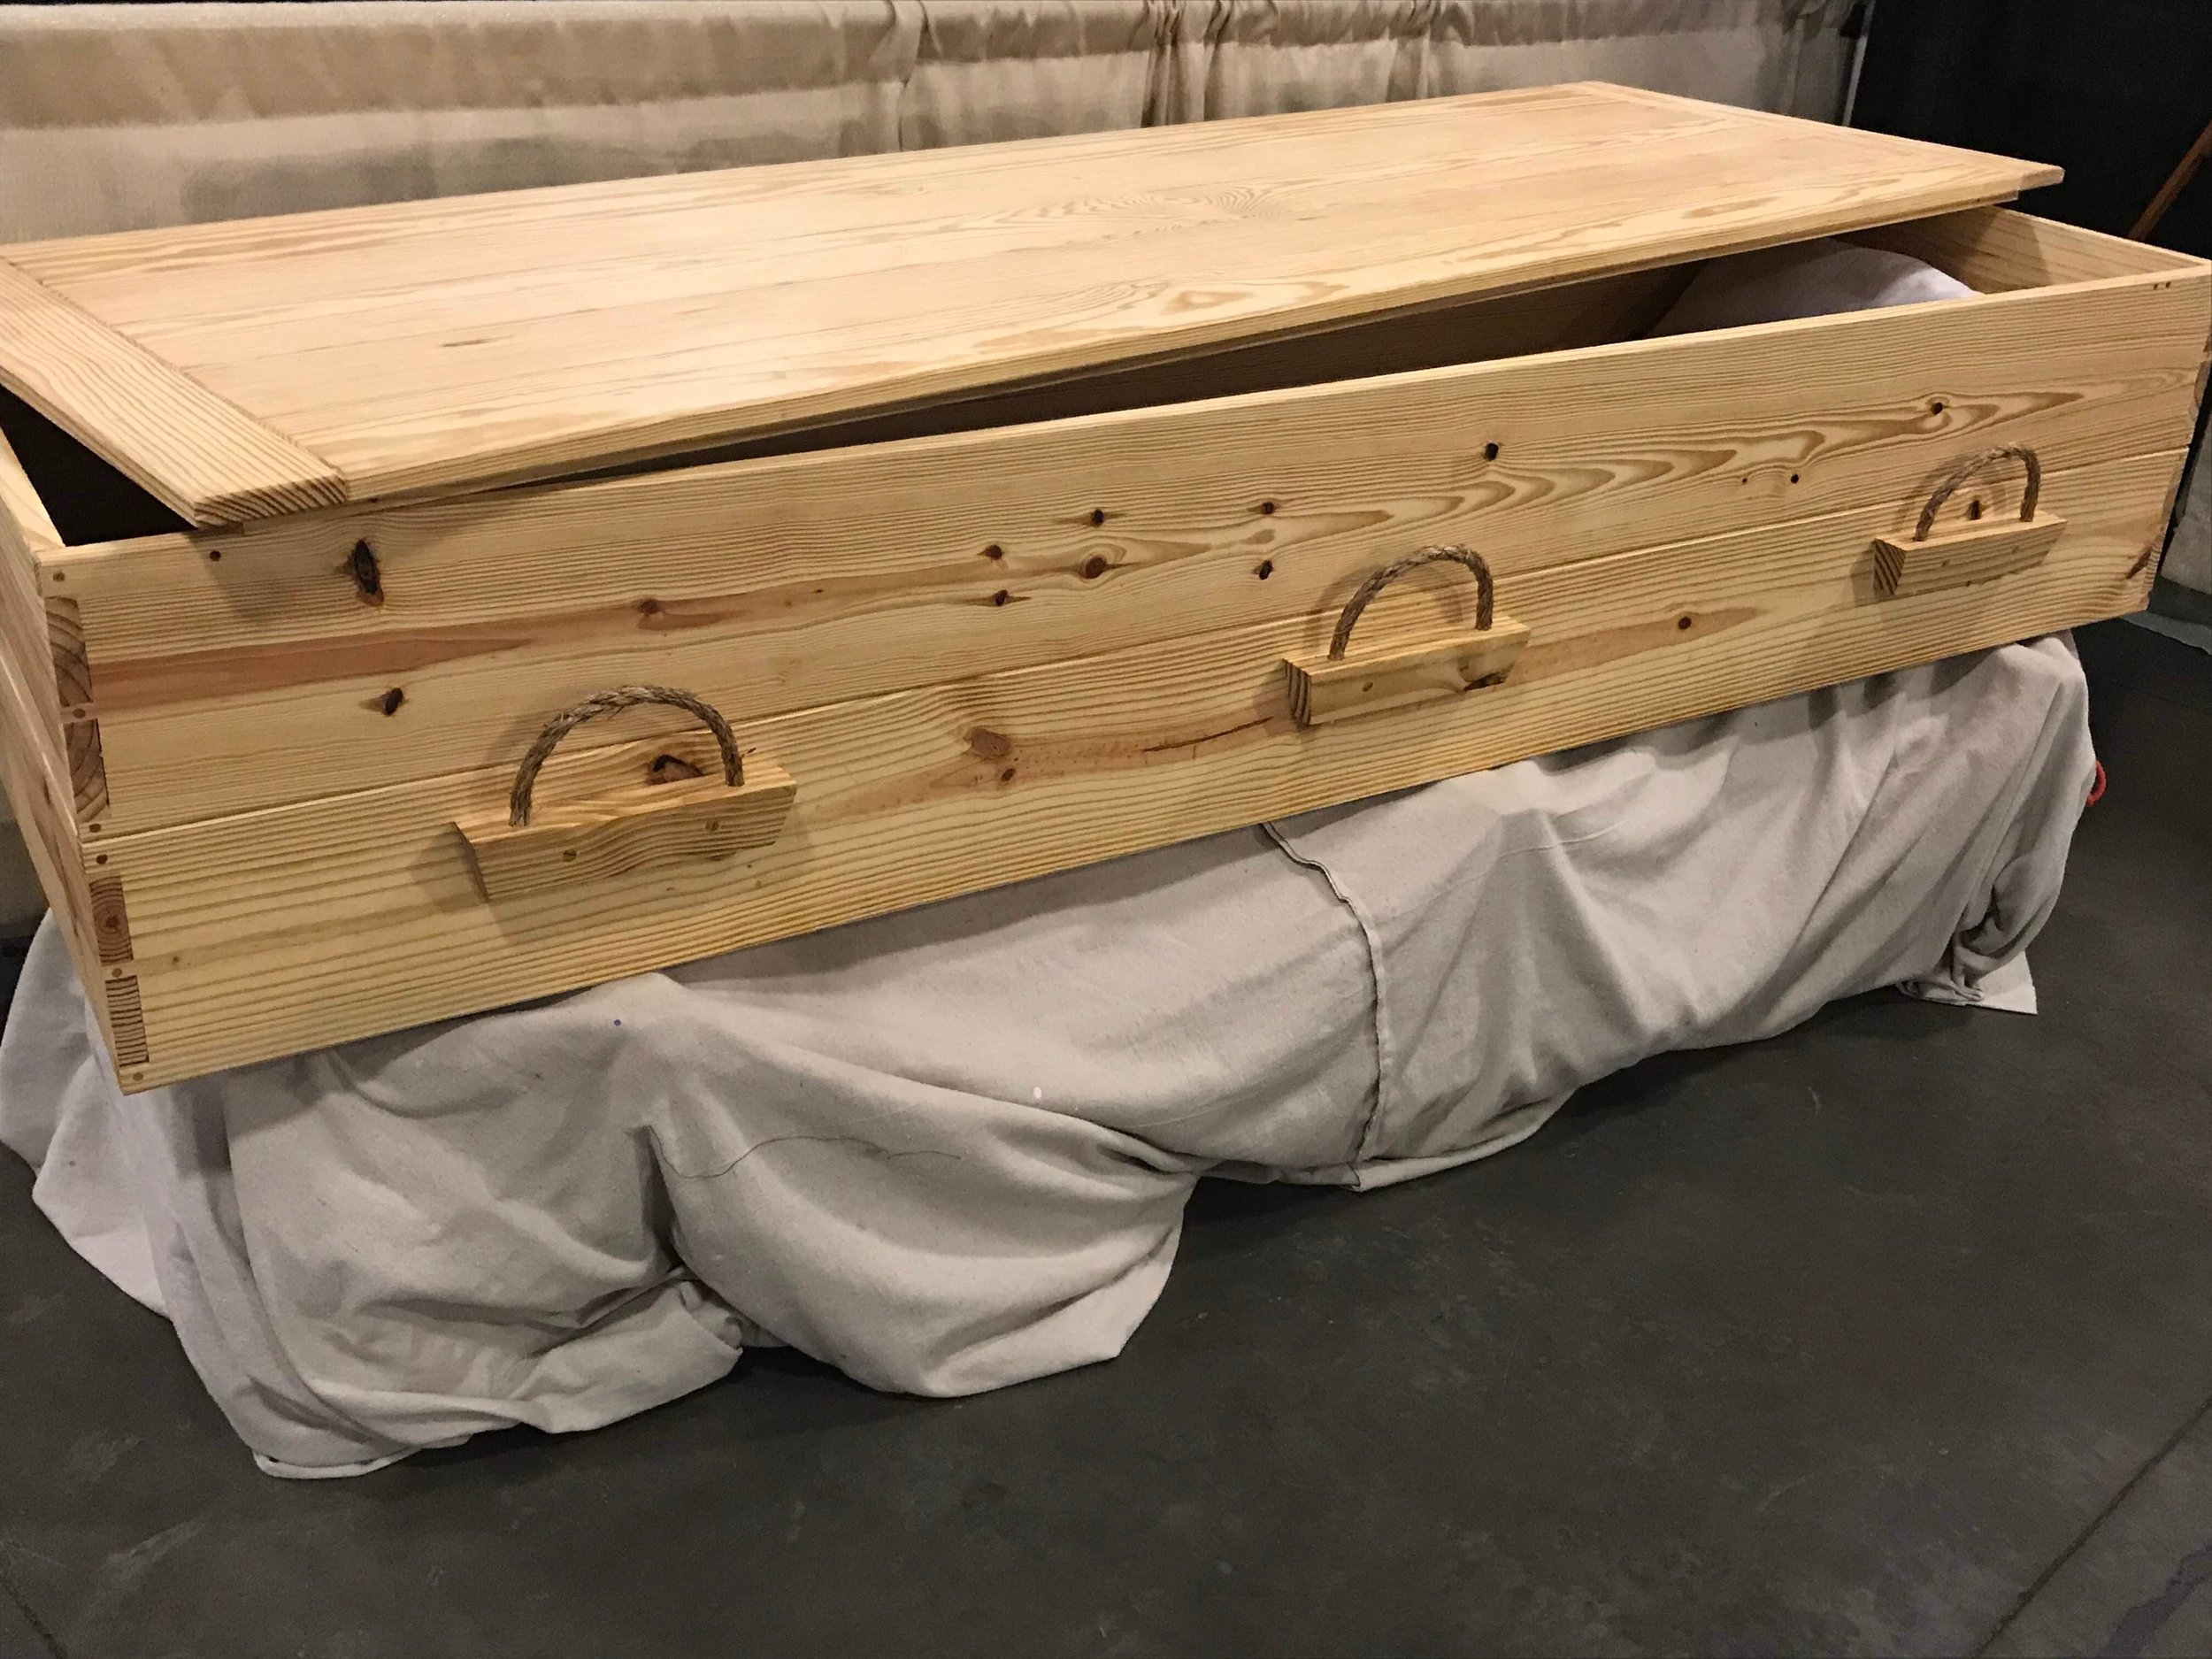 Southern Yellow Pine - no metal | all-wood joinery | sisal rope handles | 3-leaf GBC certifiedEno River model (tung oil finish) | $1800Jordan River model (no finish, kosher) | $1800Just In (Book)Case Casket | Inquire for PriceBuilt by Aldergrove Caskets | More Photos